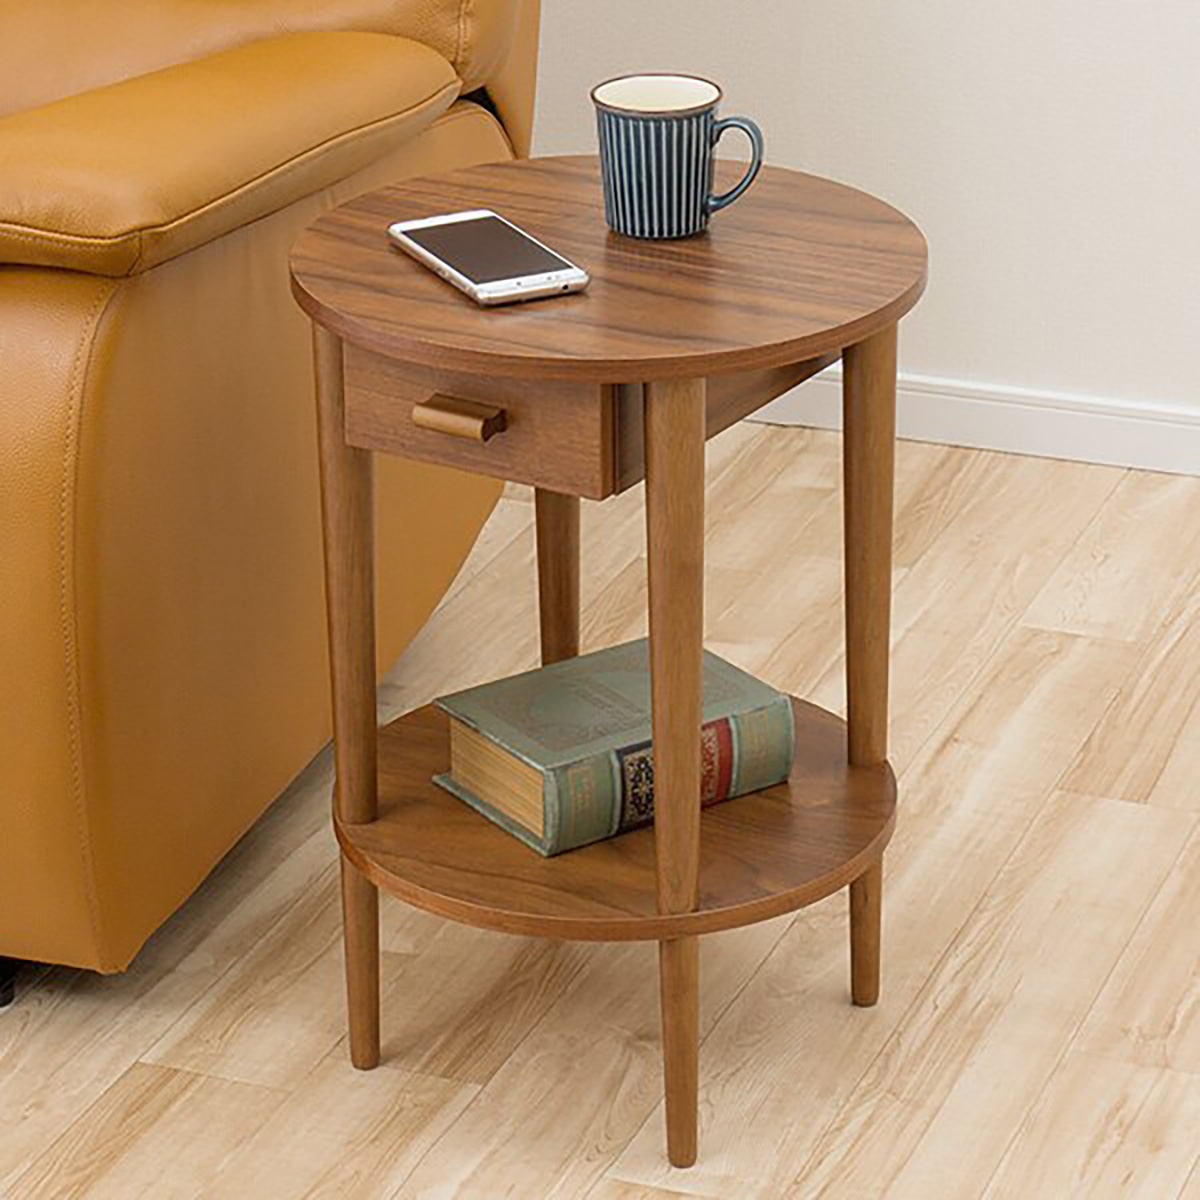 Side Table Surrey.Tree Side Table Surrey Nitori Product Target More Than Total Amount Of Money 7 560 Yen With The Pretty Drawer